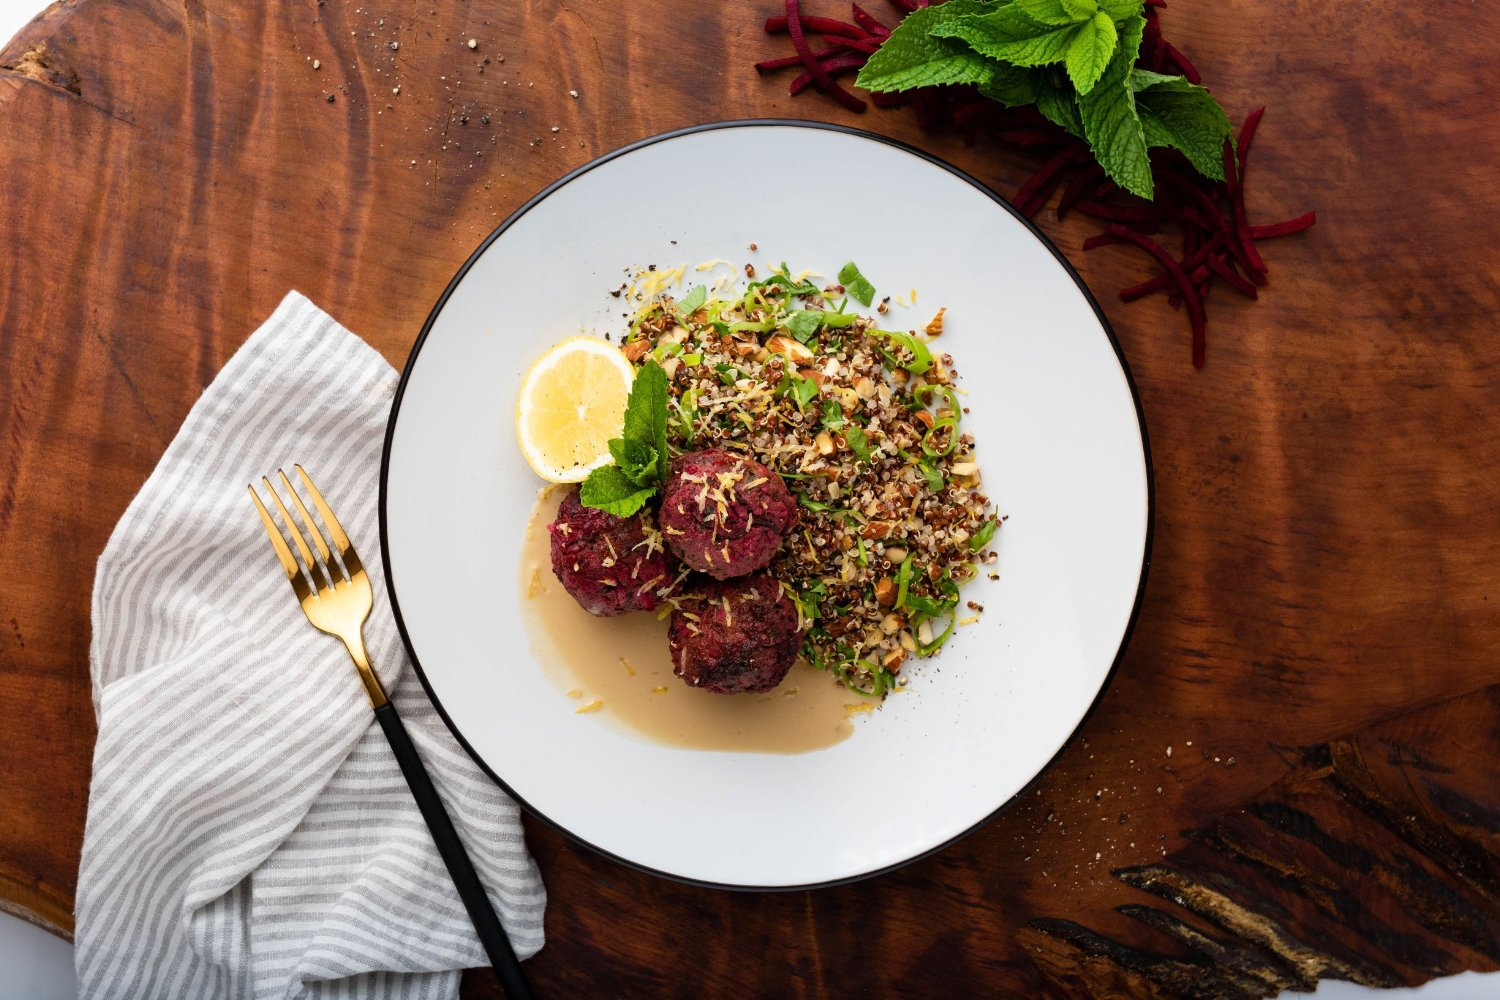 Middle Eastern lamb kofta salad.